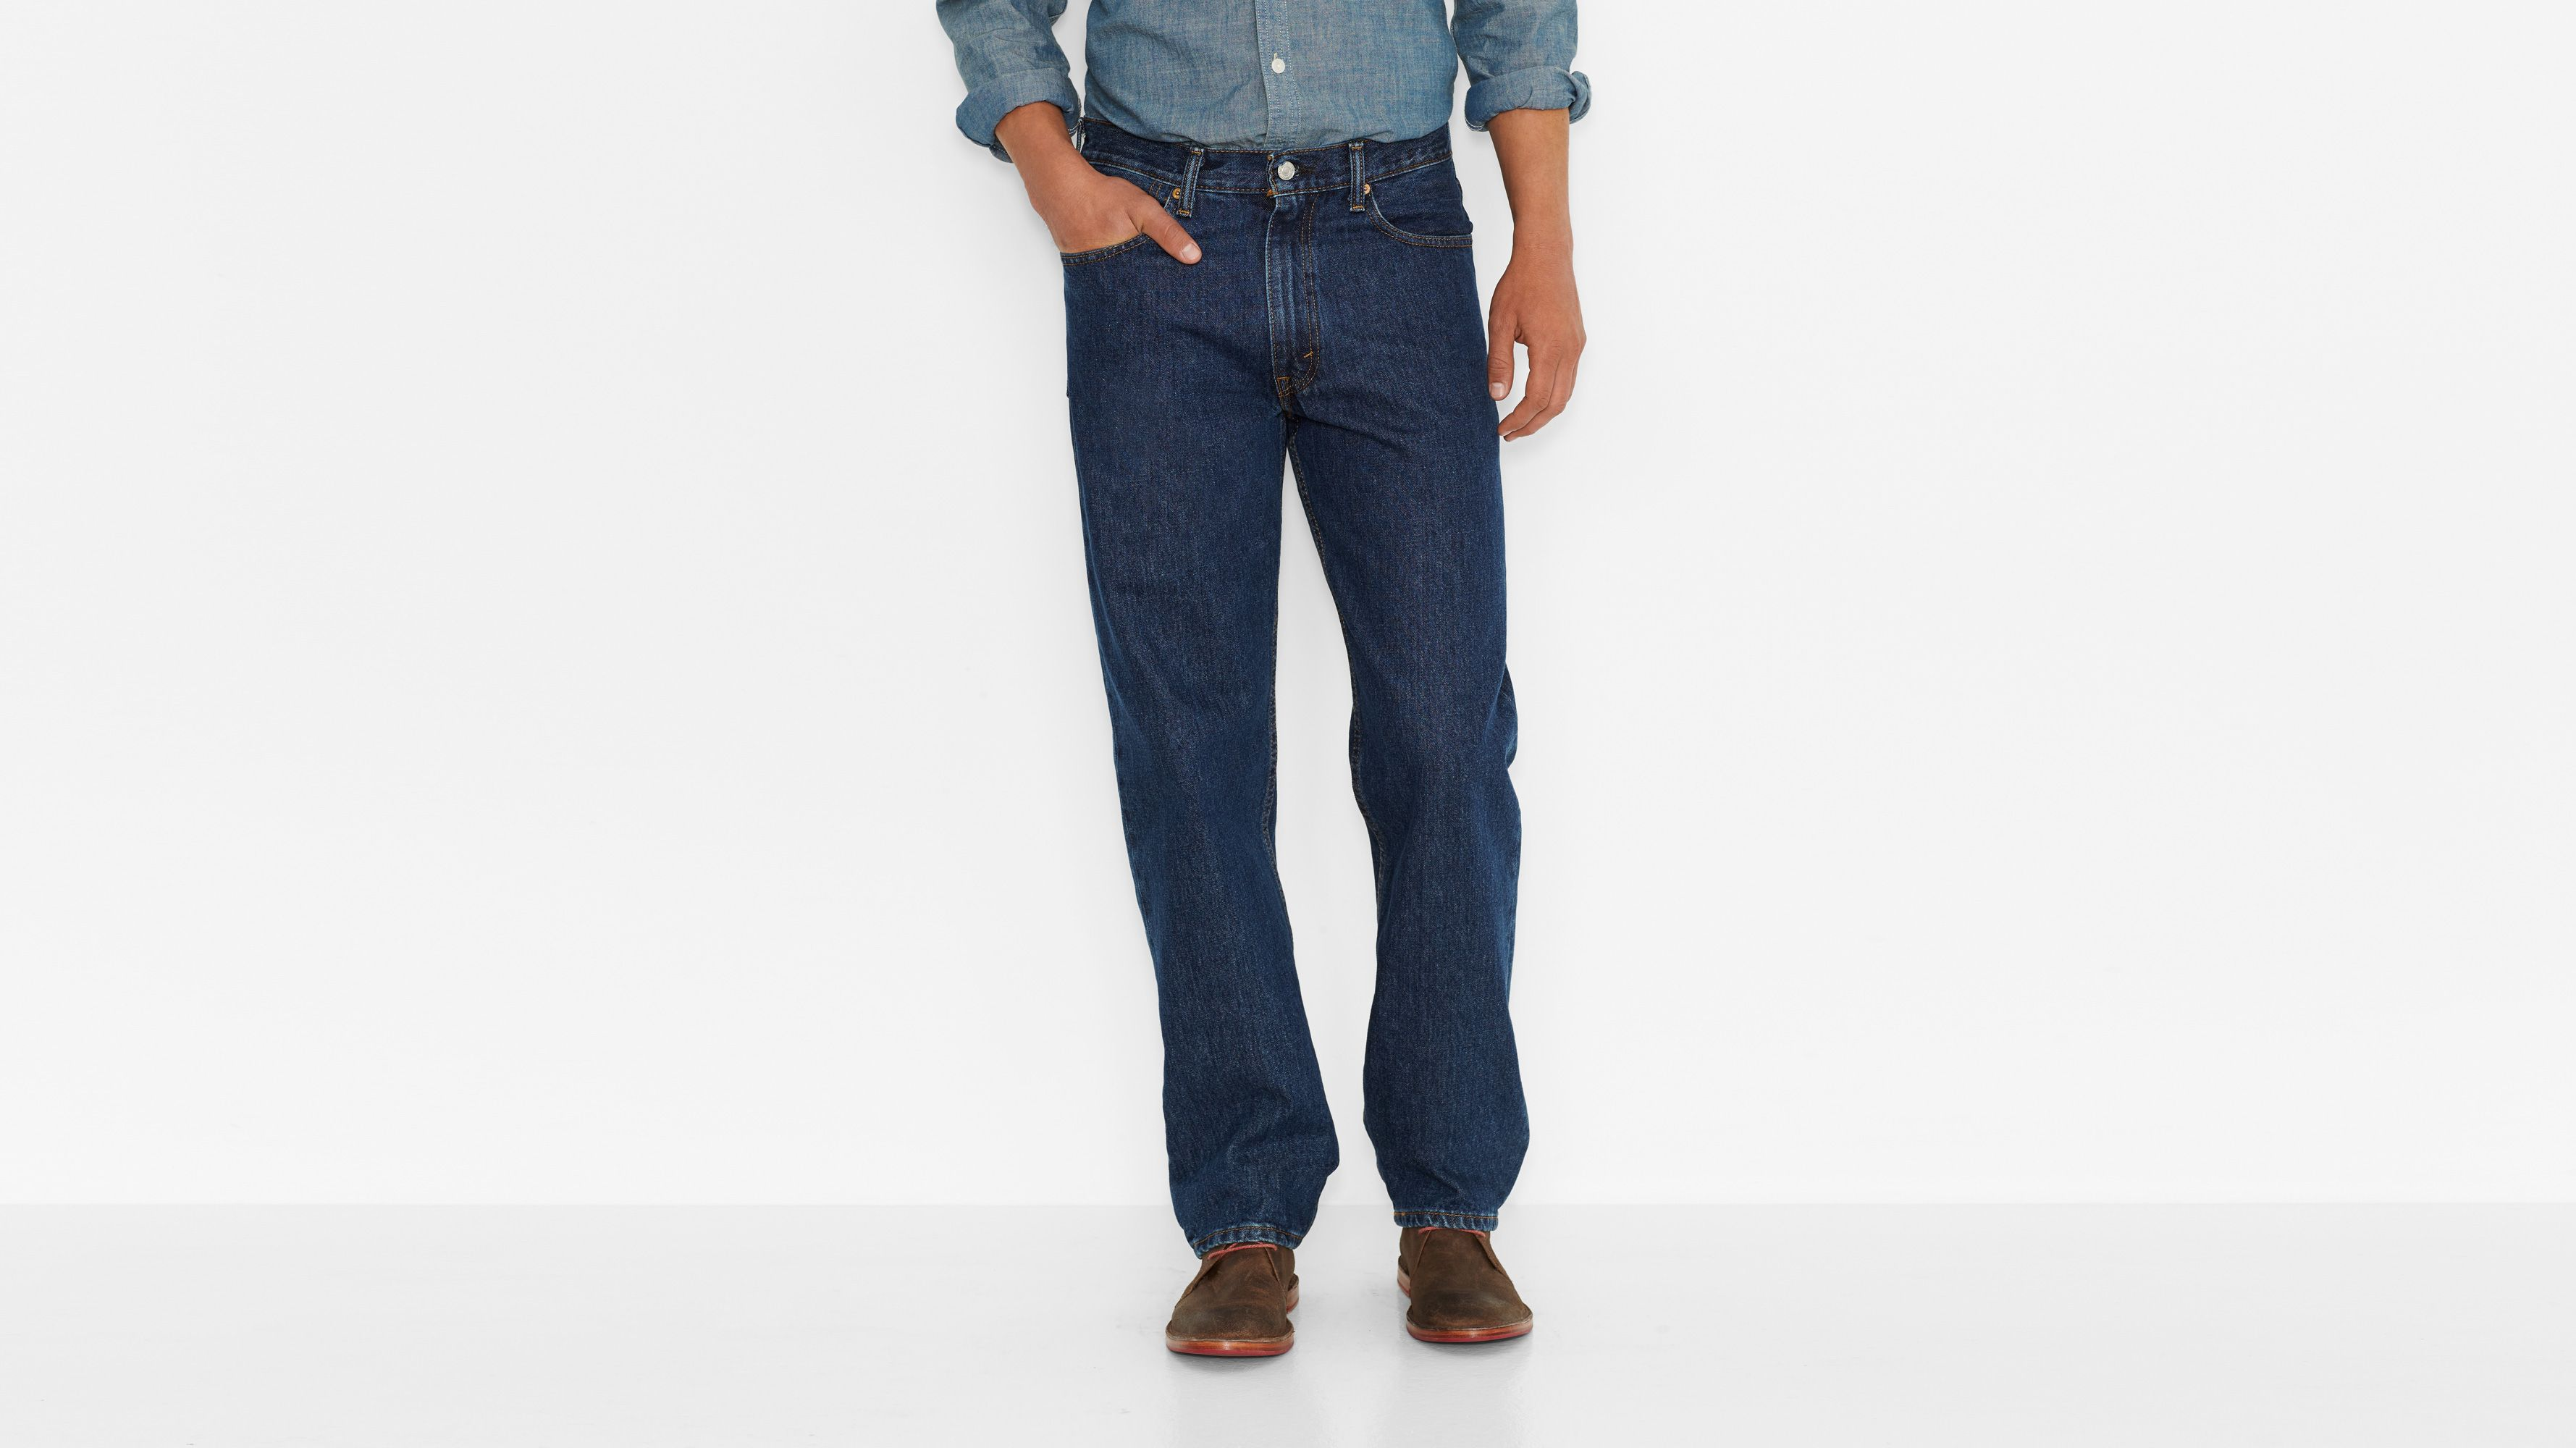 550™ Relaxed Fit Jeans - Dark Stonewash